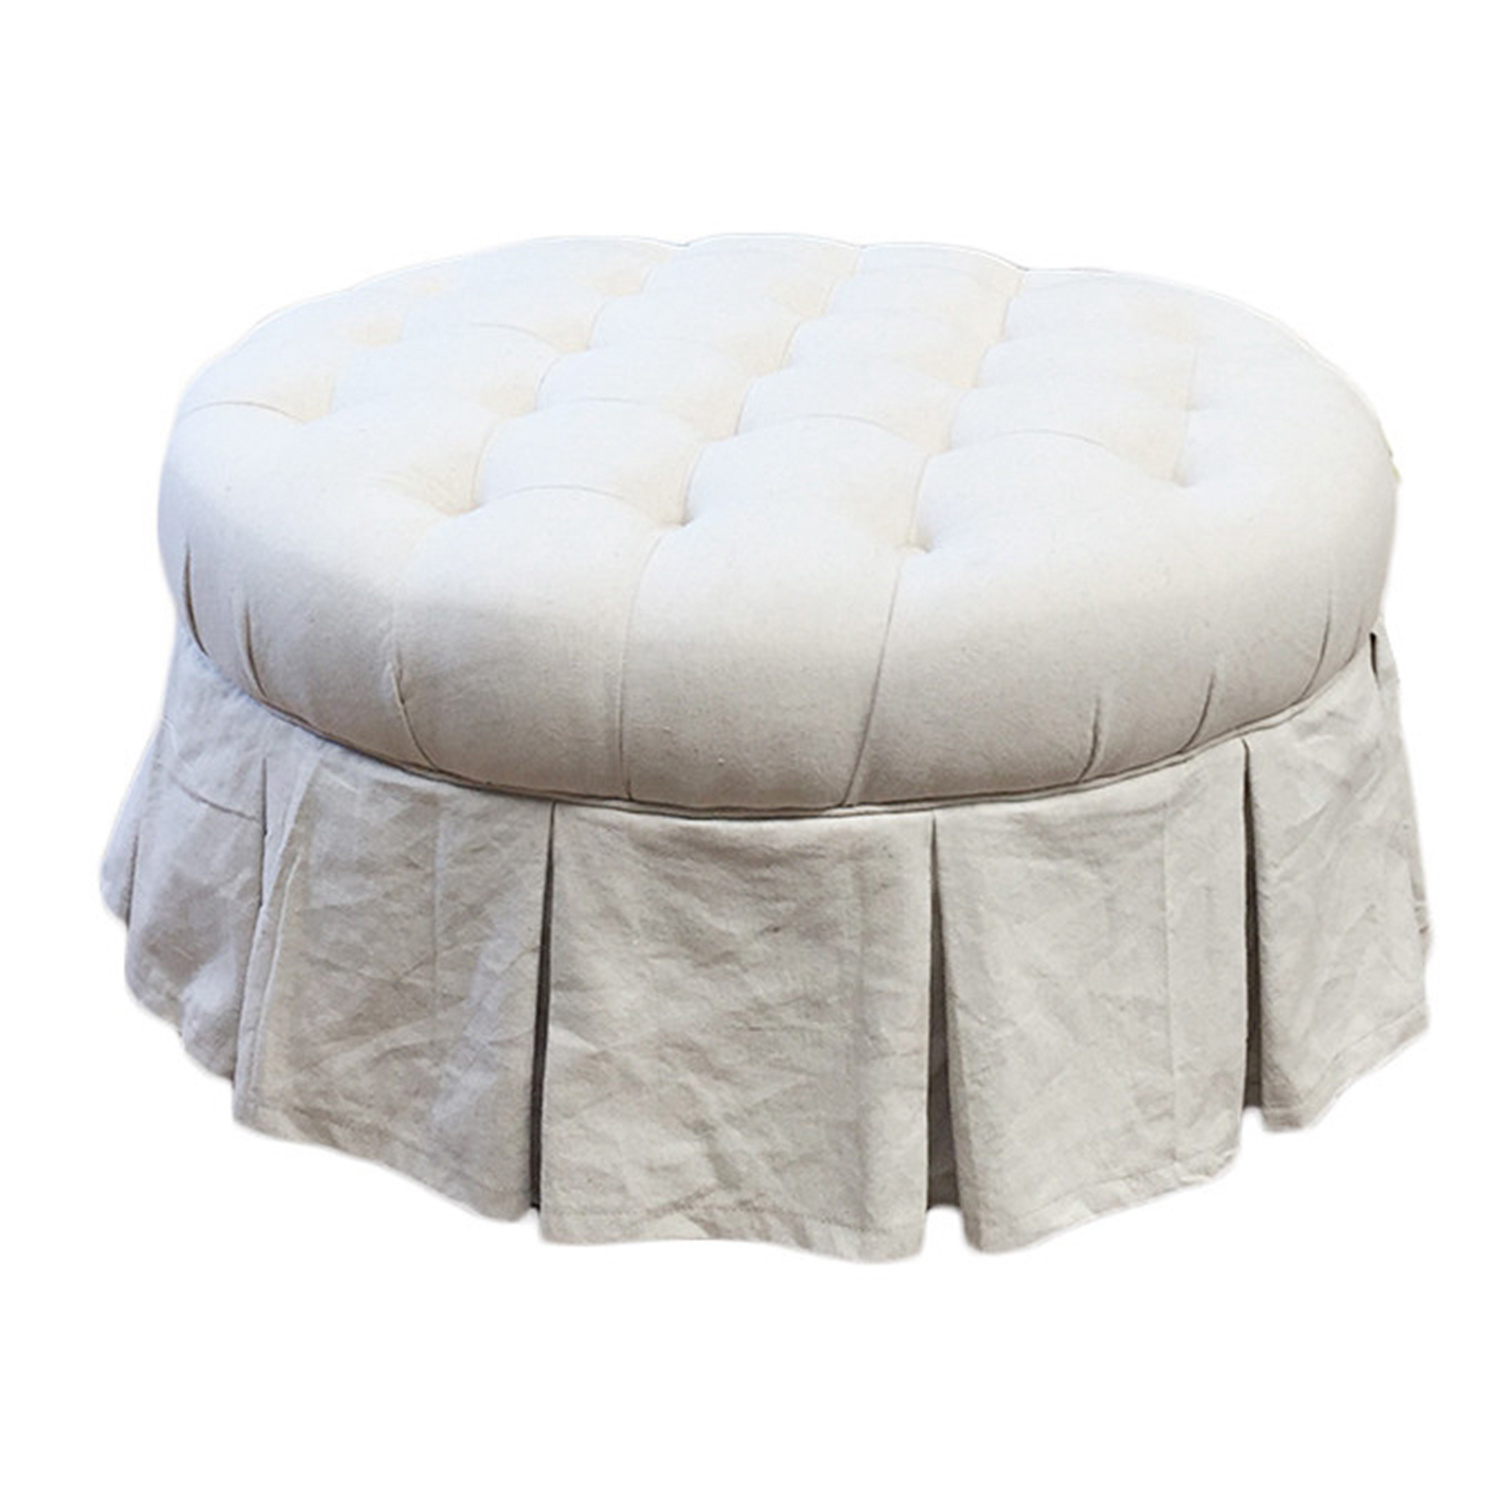 - China White Fabric Circle Round Upholstered Button Tufted Coffee